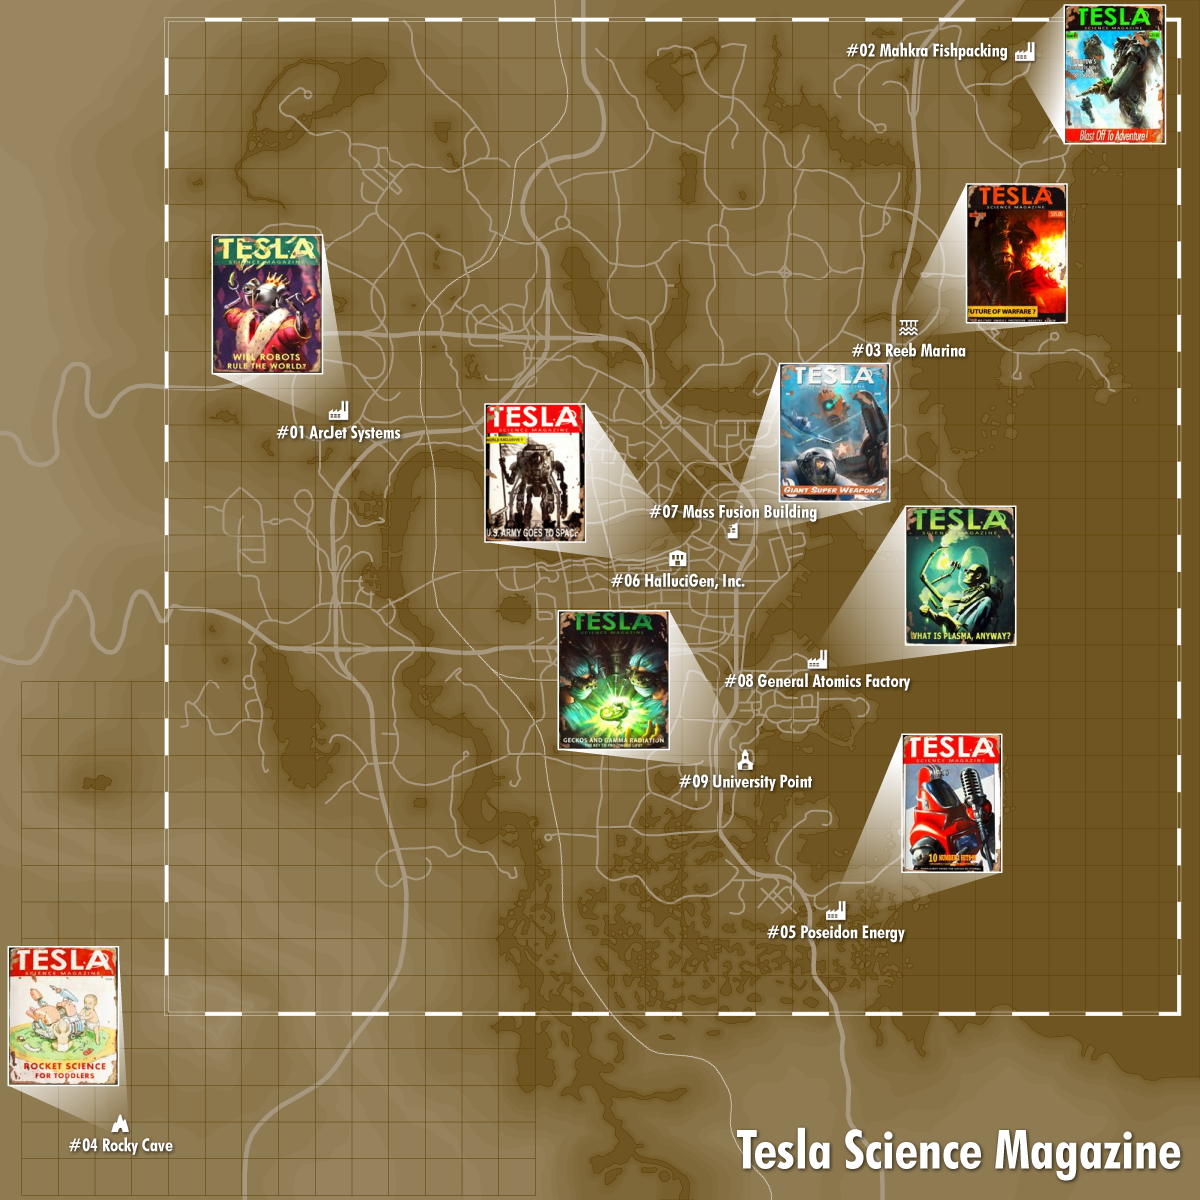 Tesla Science Locations With Images Fallout 4 Magazines Fallout 4 Locations Fallout 4 Map